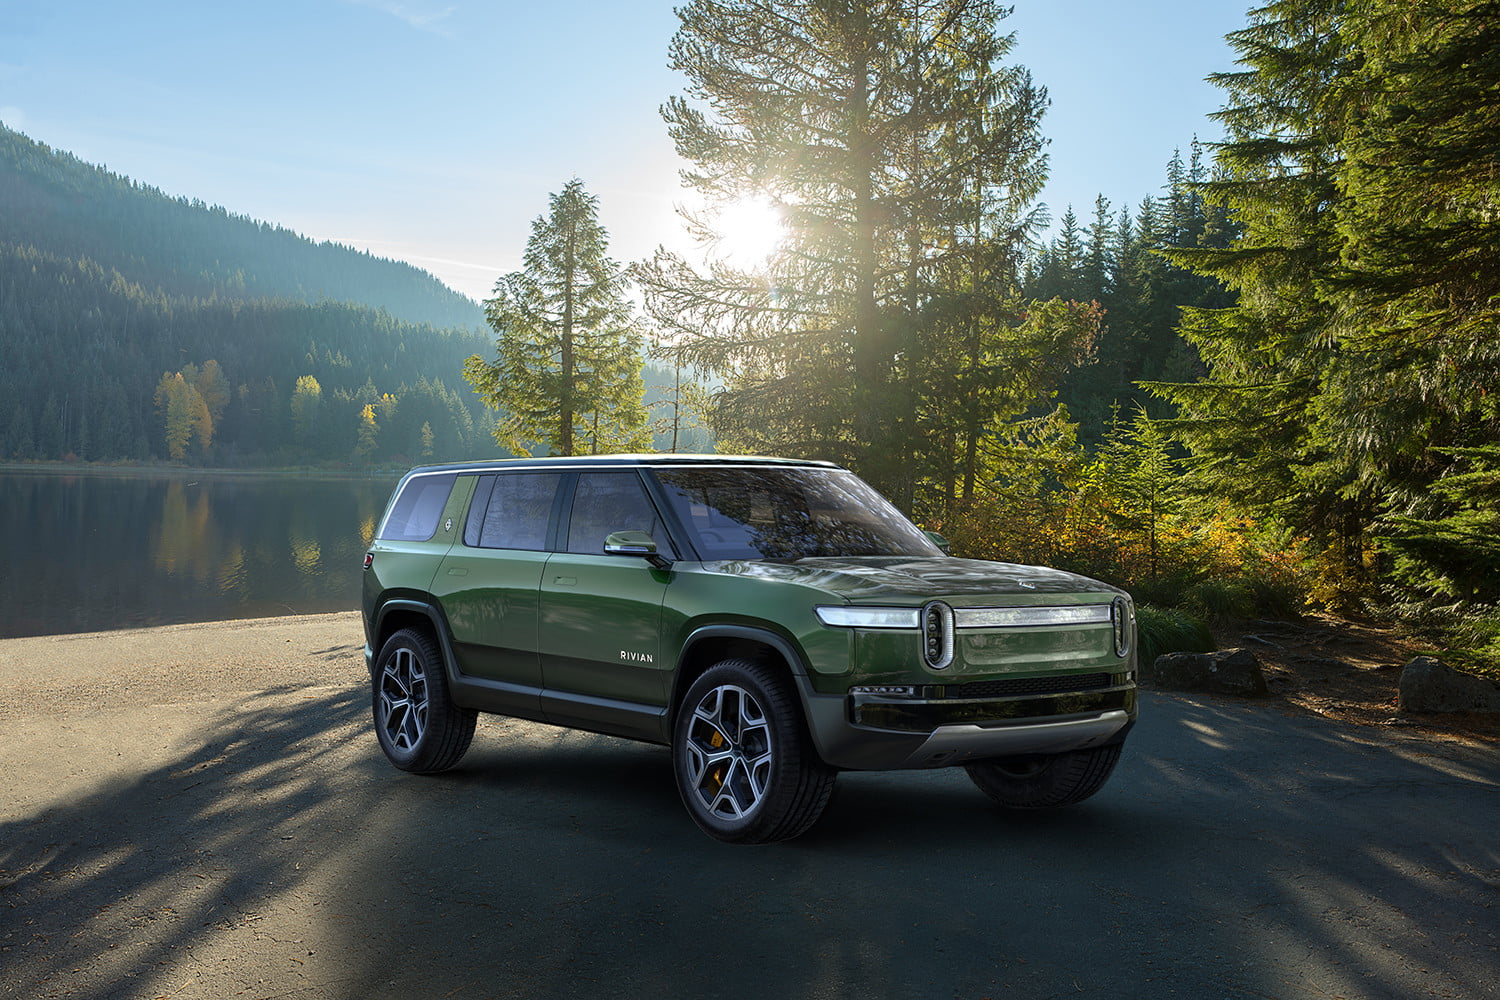 Lincoln could tap into Rivian's expertise to build an electric off-roader